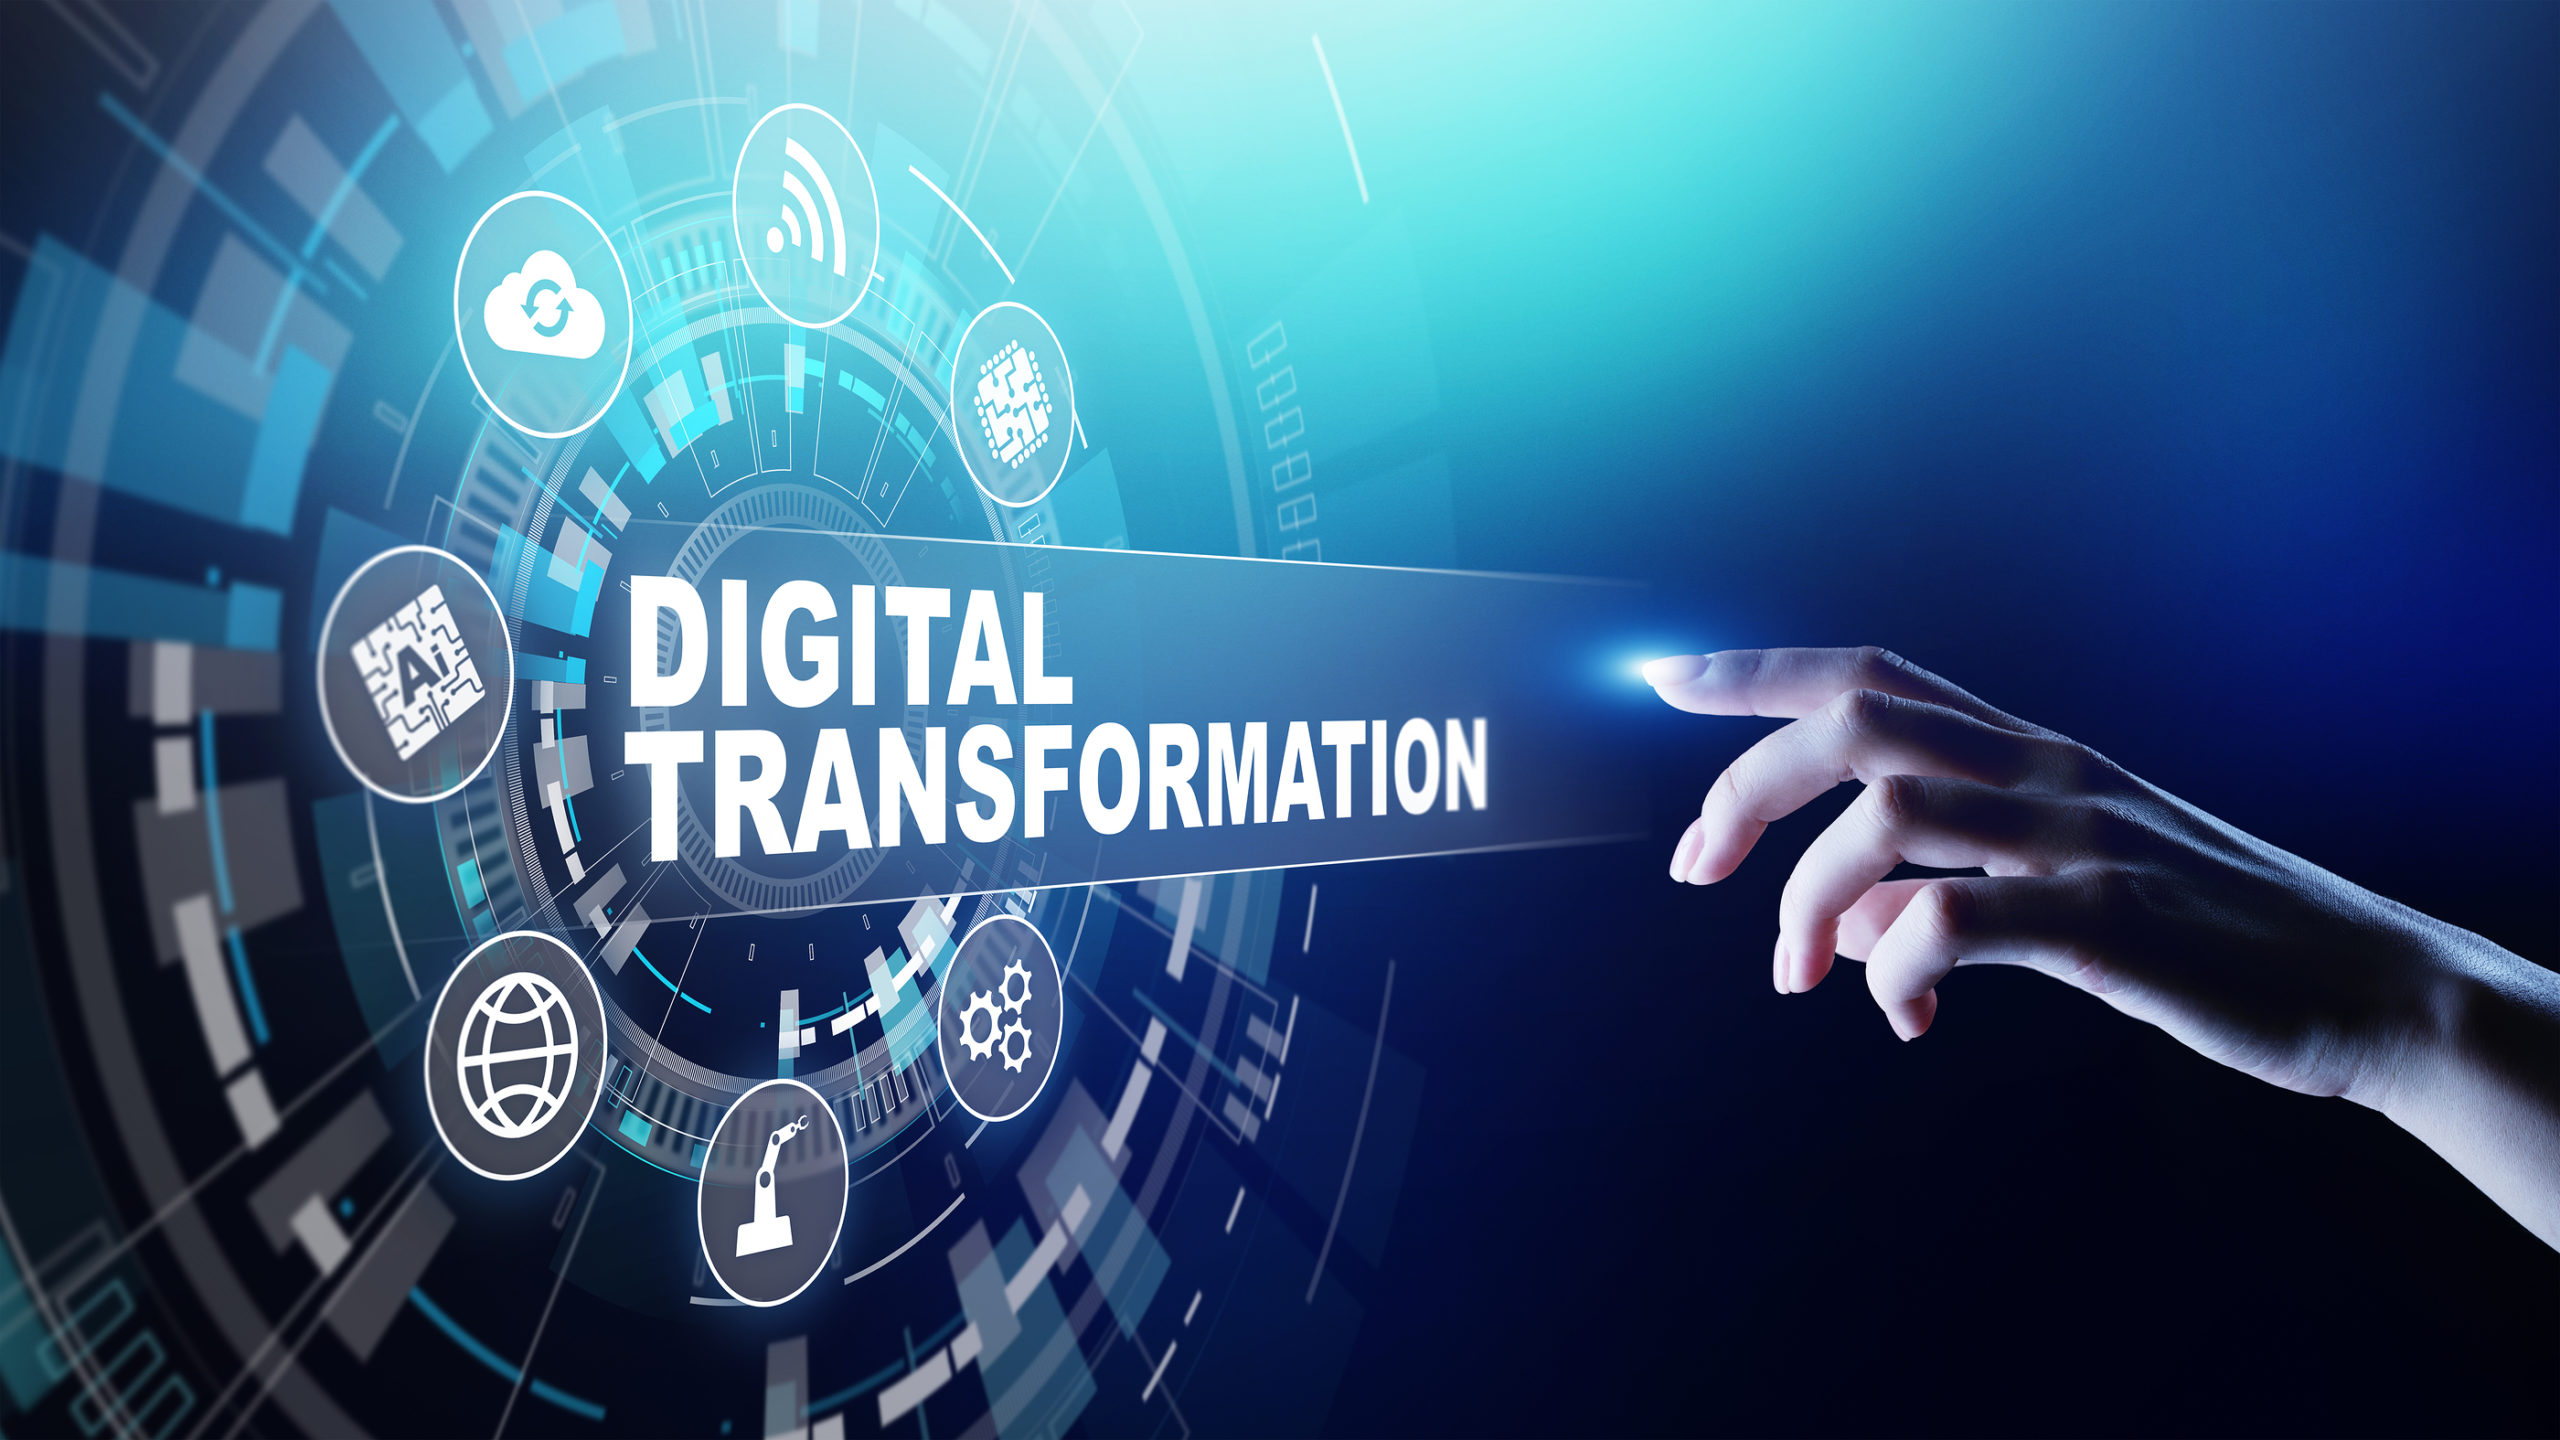 What the heck is Digital Transformation anyway